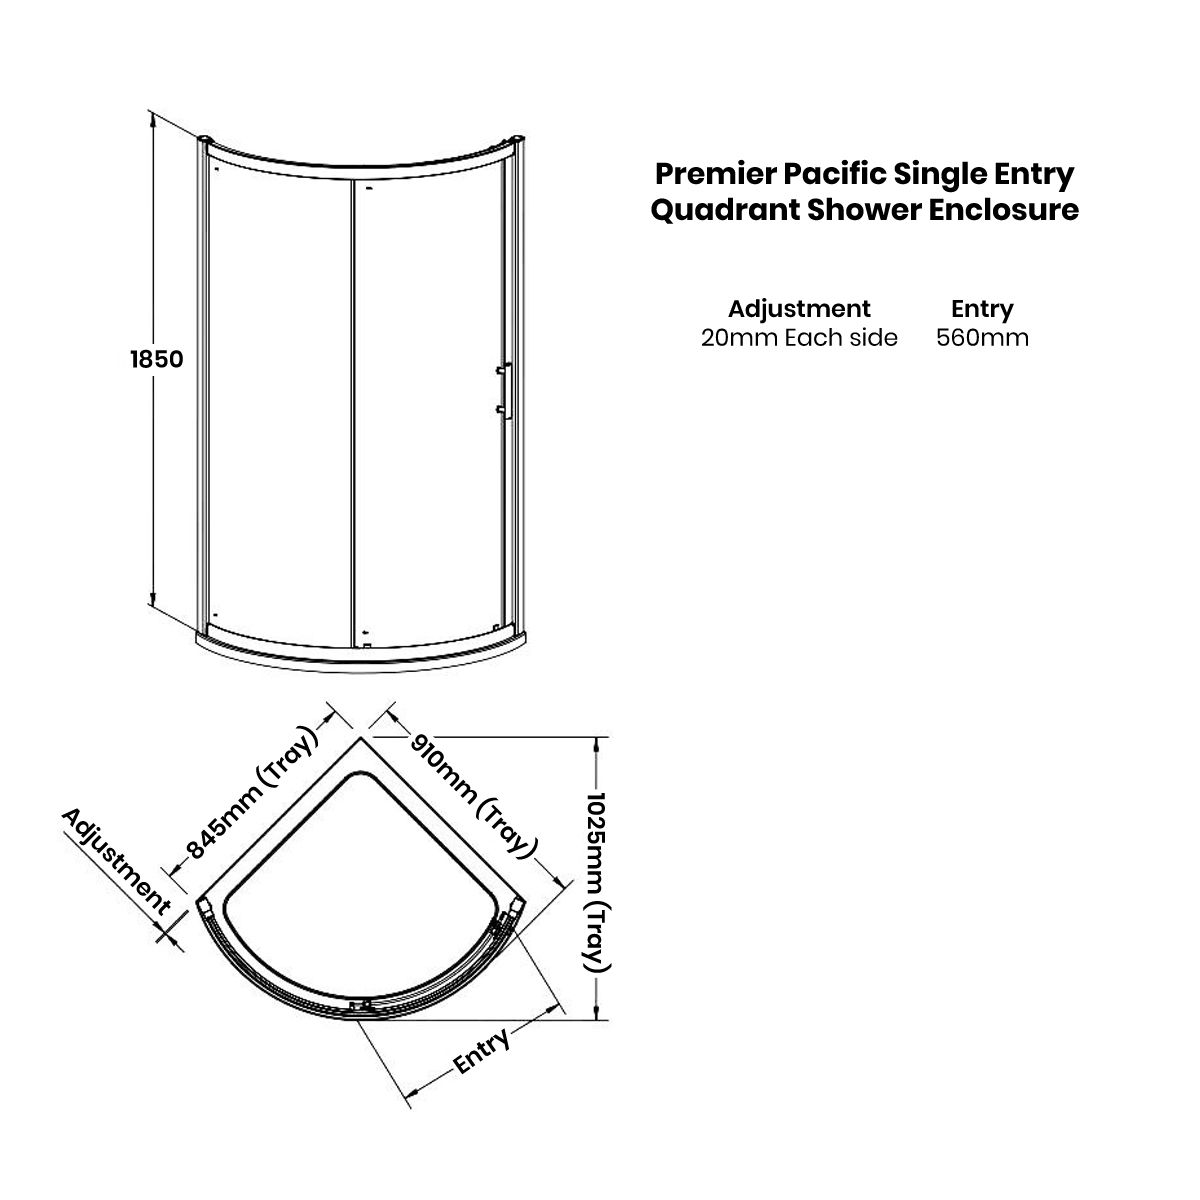 Premier Pacific Single Entry Quadrant Shower Enclosure Dimensions